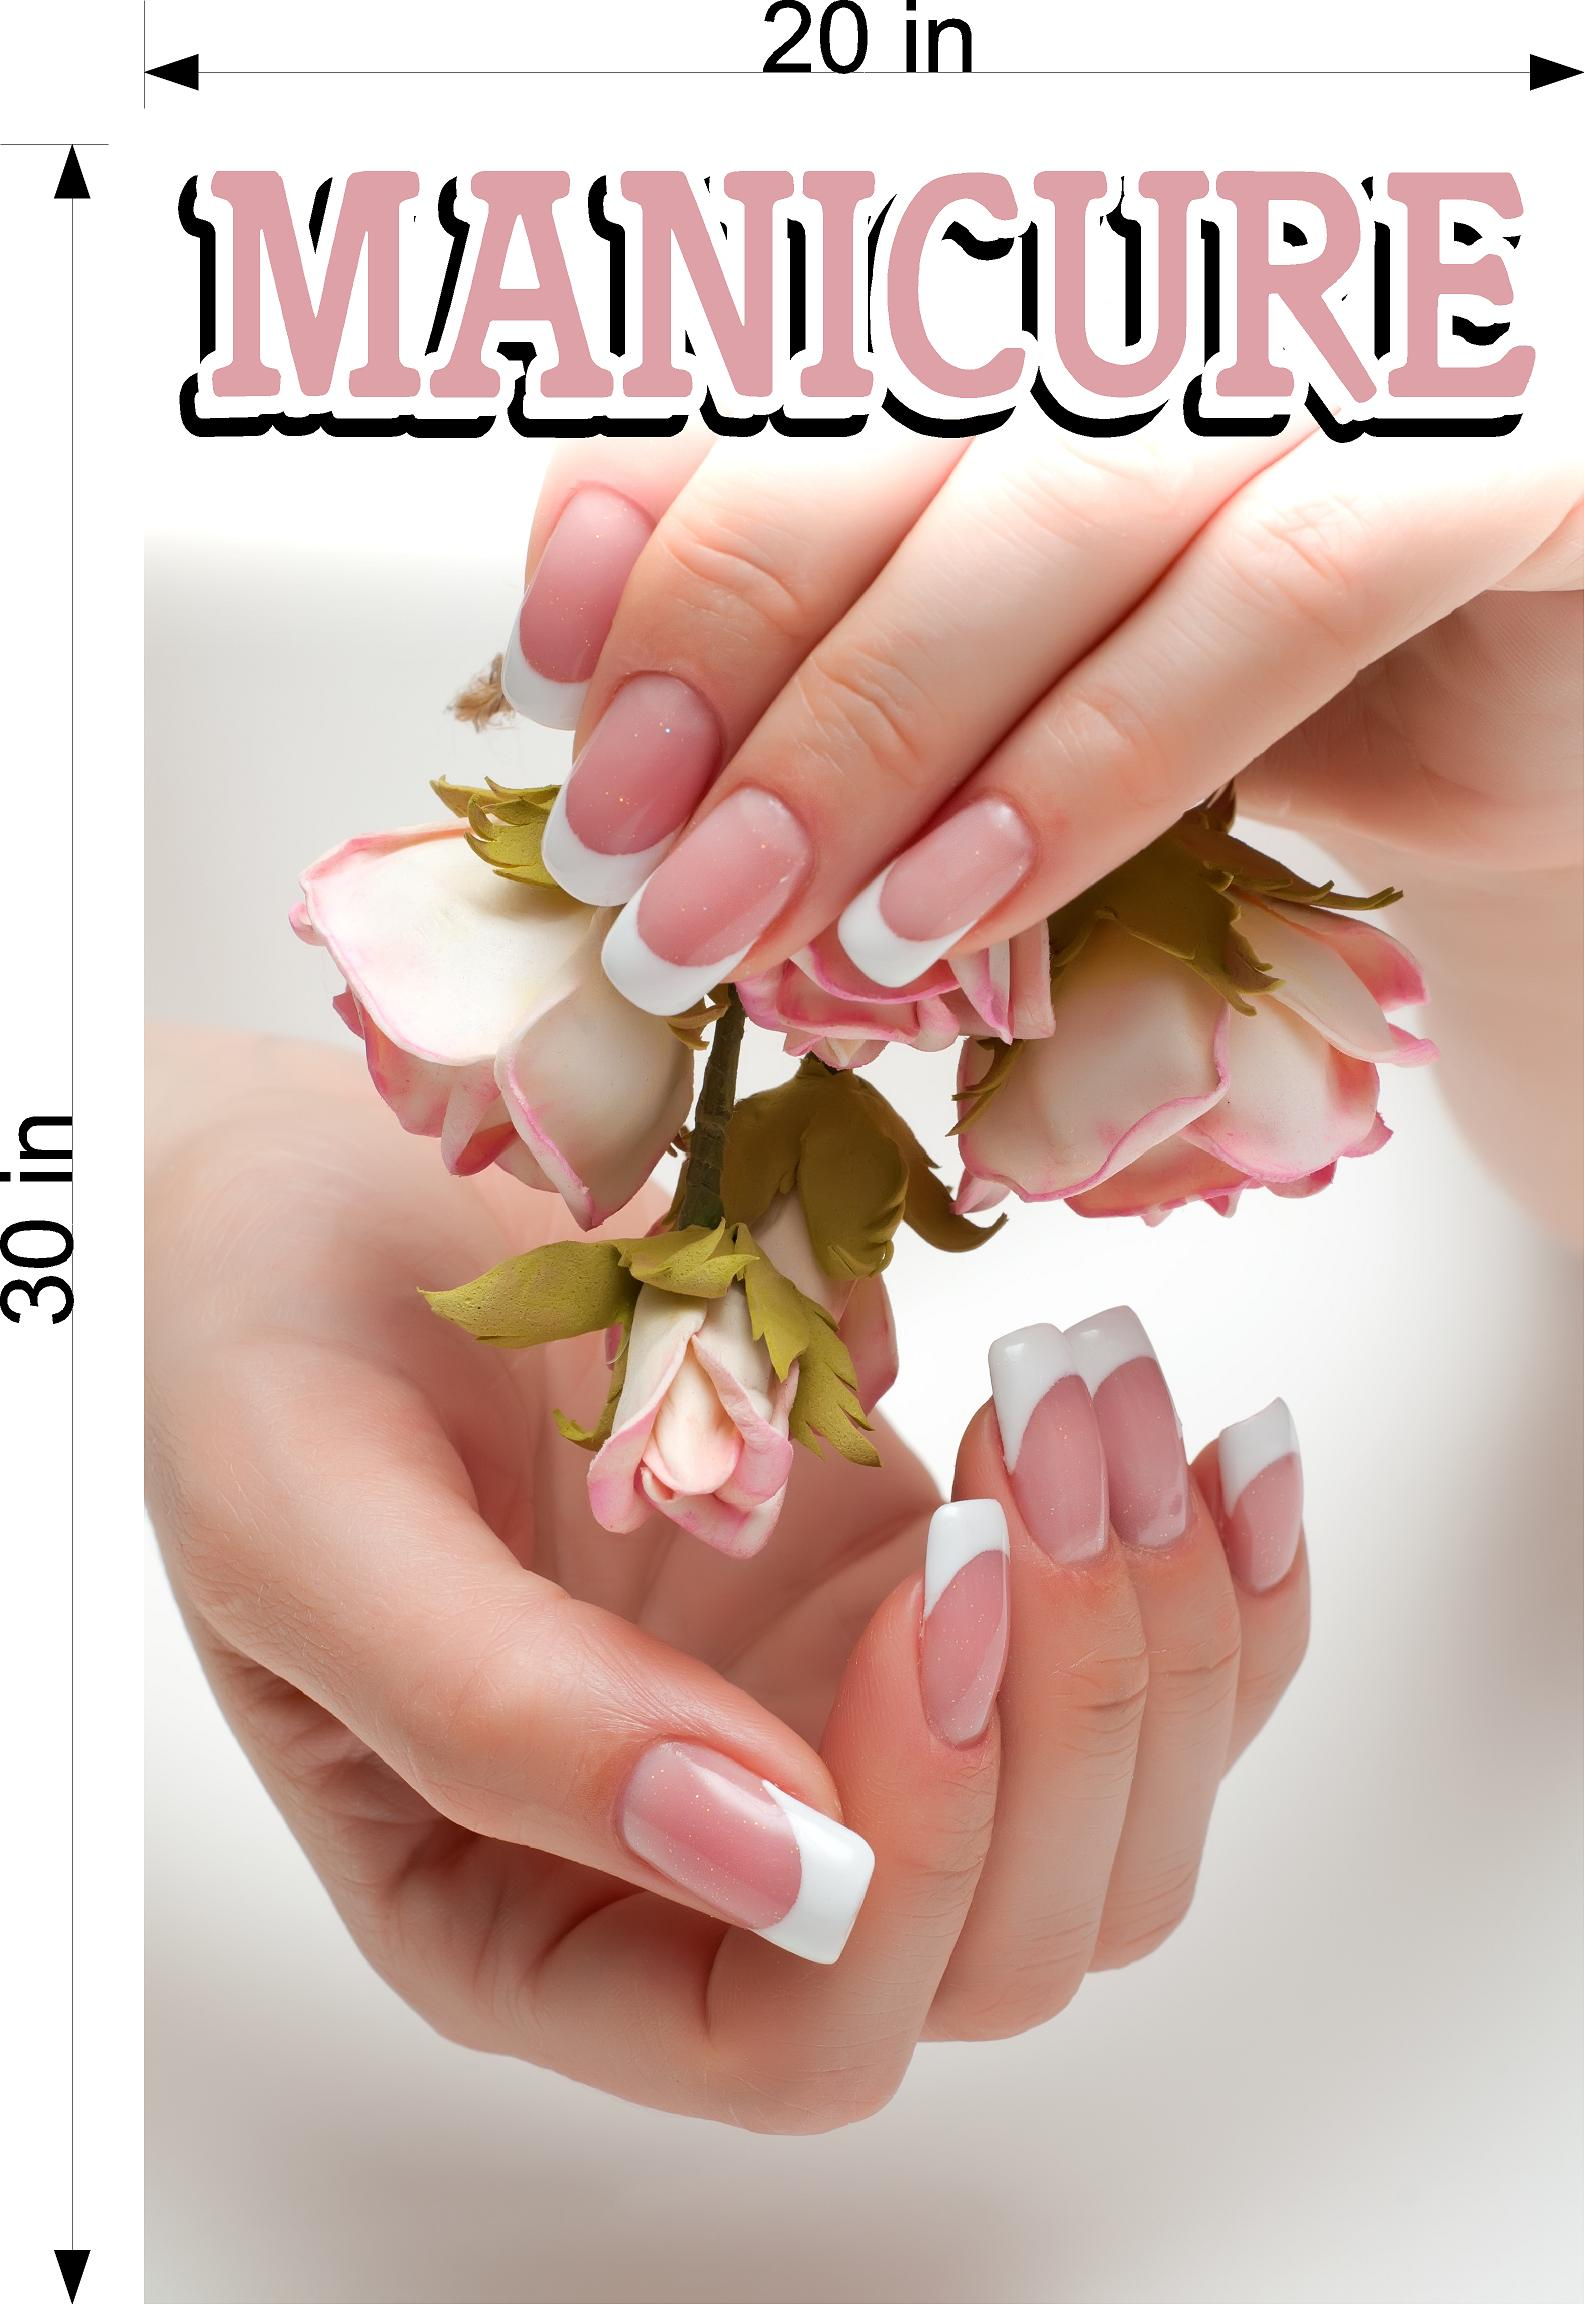 Manicure 09 Photo-Realistic Paper Poster Premium Matte Interior Inside Sign Advertising Marketing Wall Window Non-Laminated Vertical